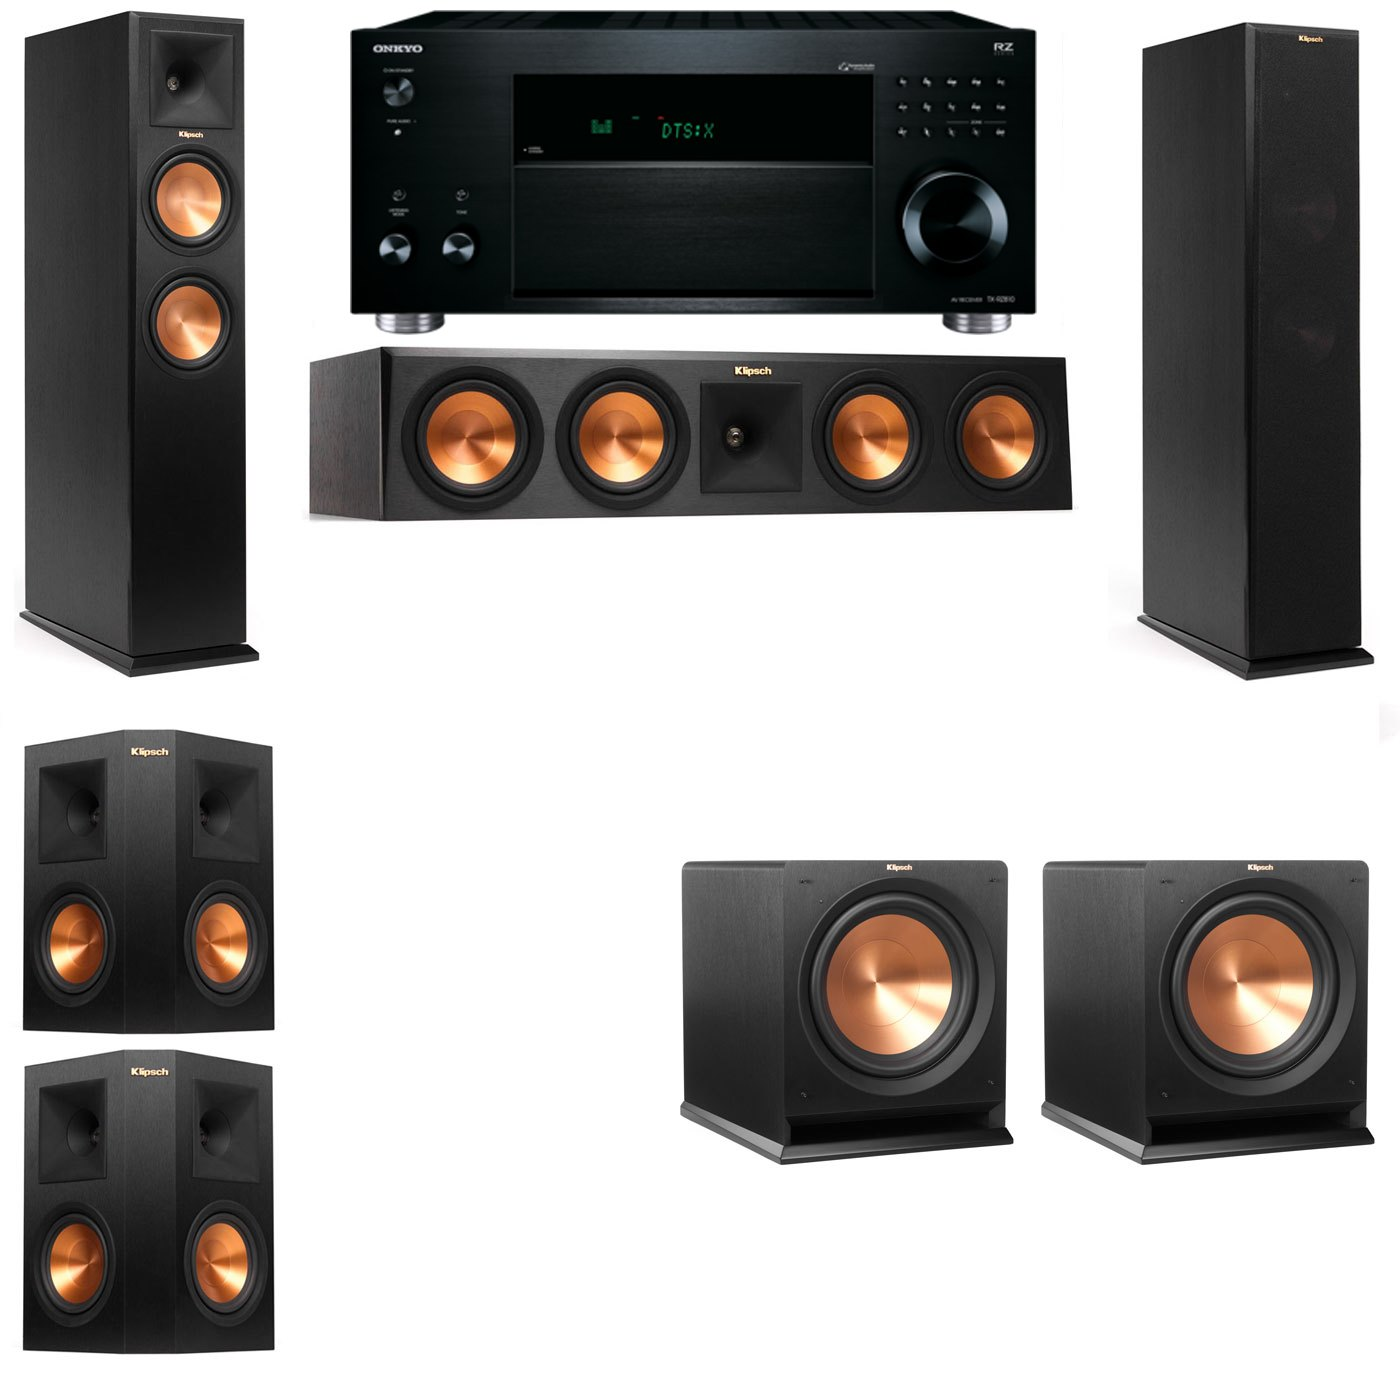 Klipsch RP-260F Tower Speakers-R112SW-5.2-Onkyo TX-RZ810